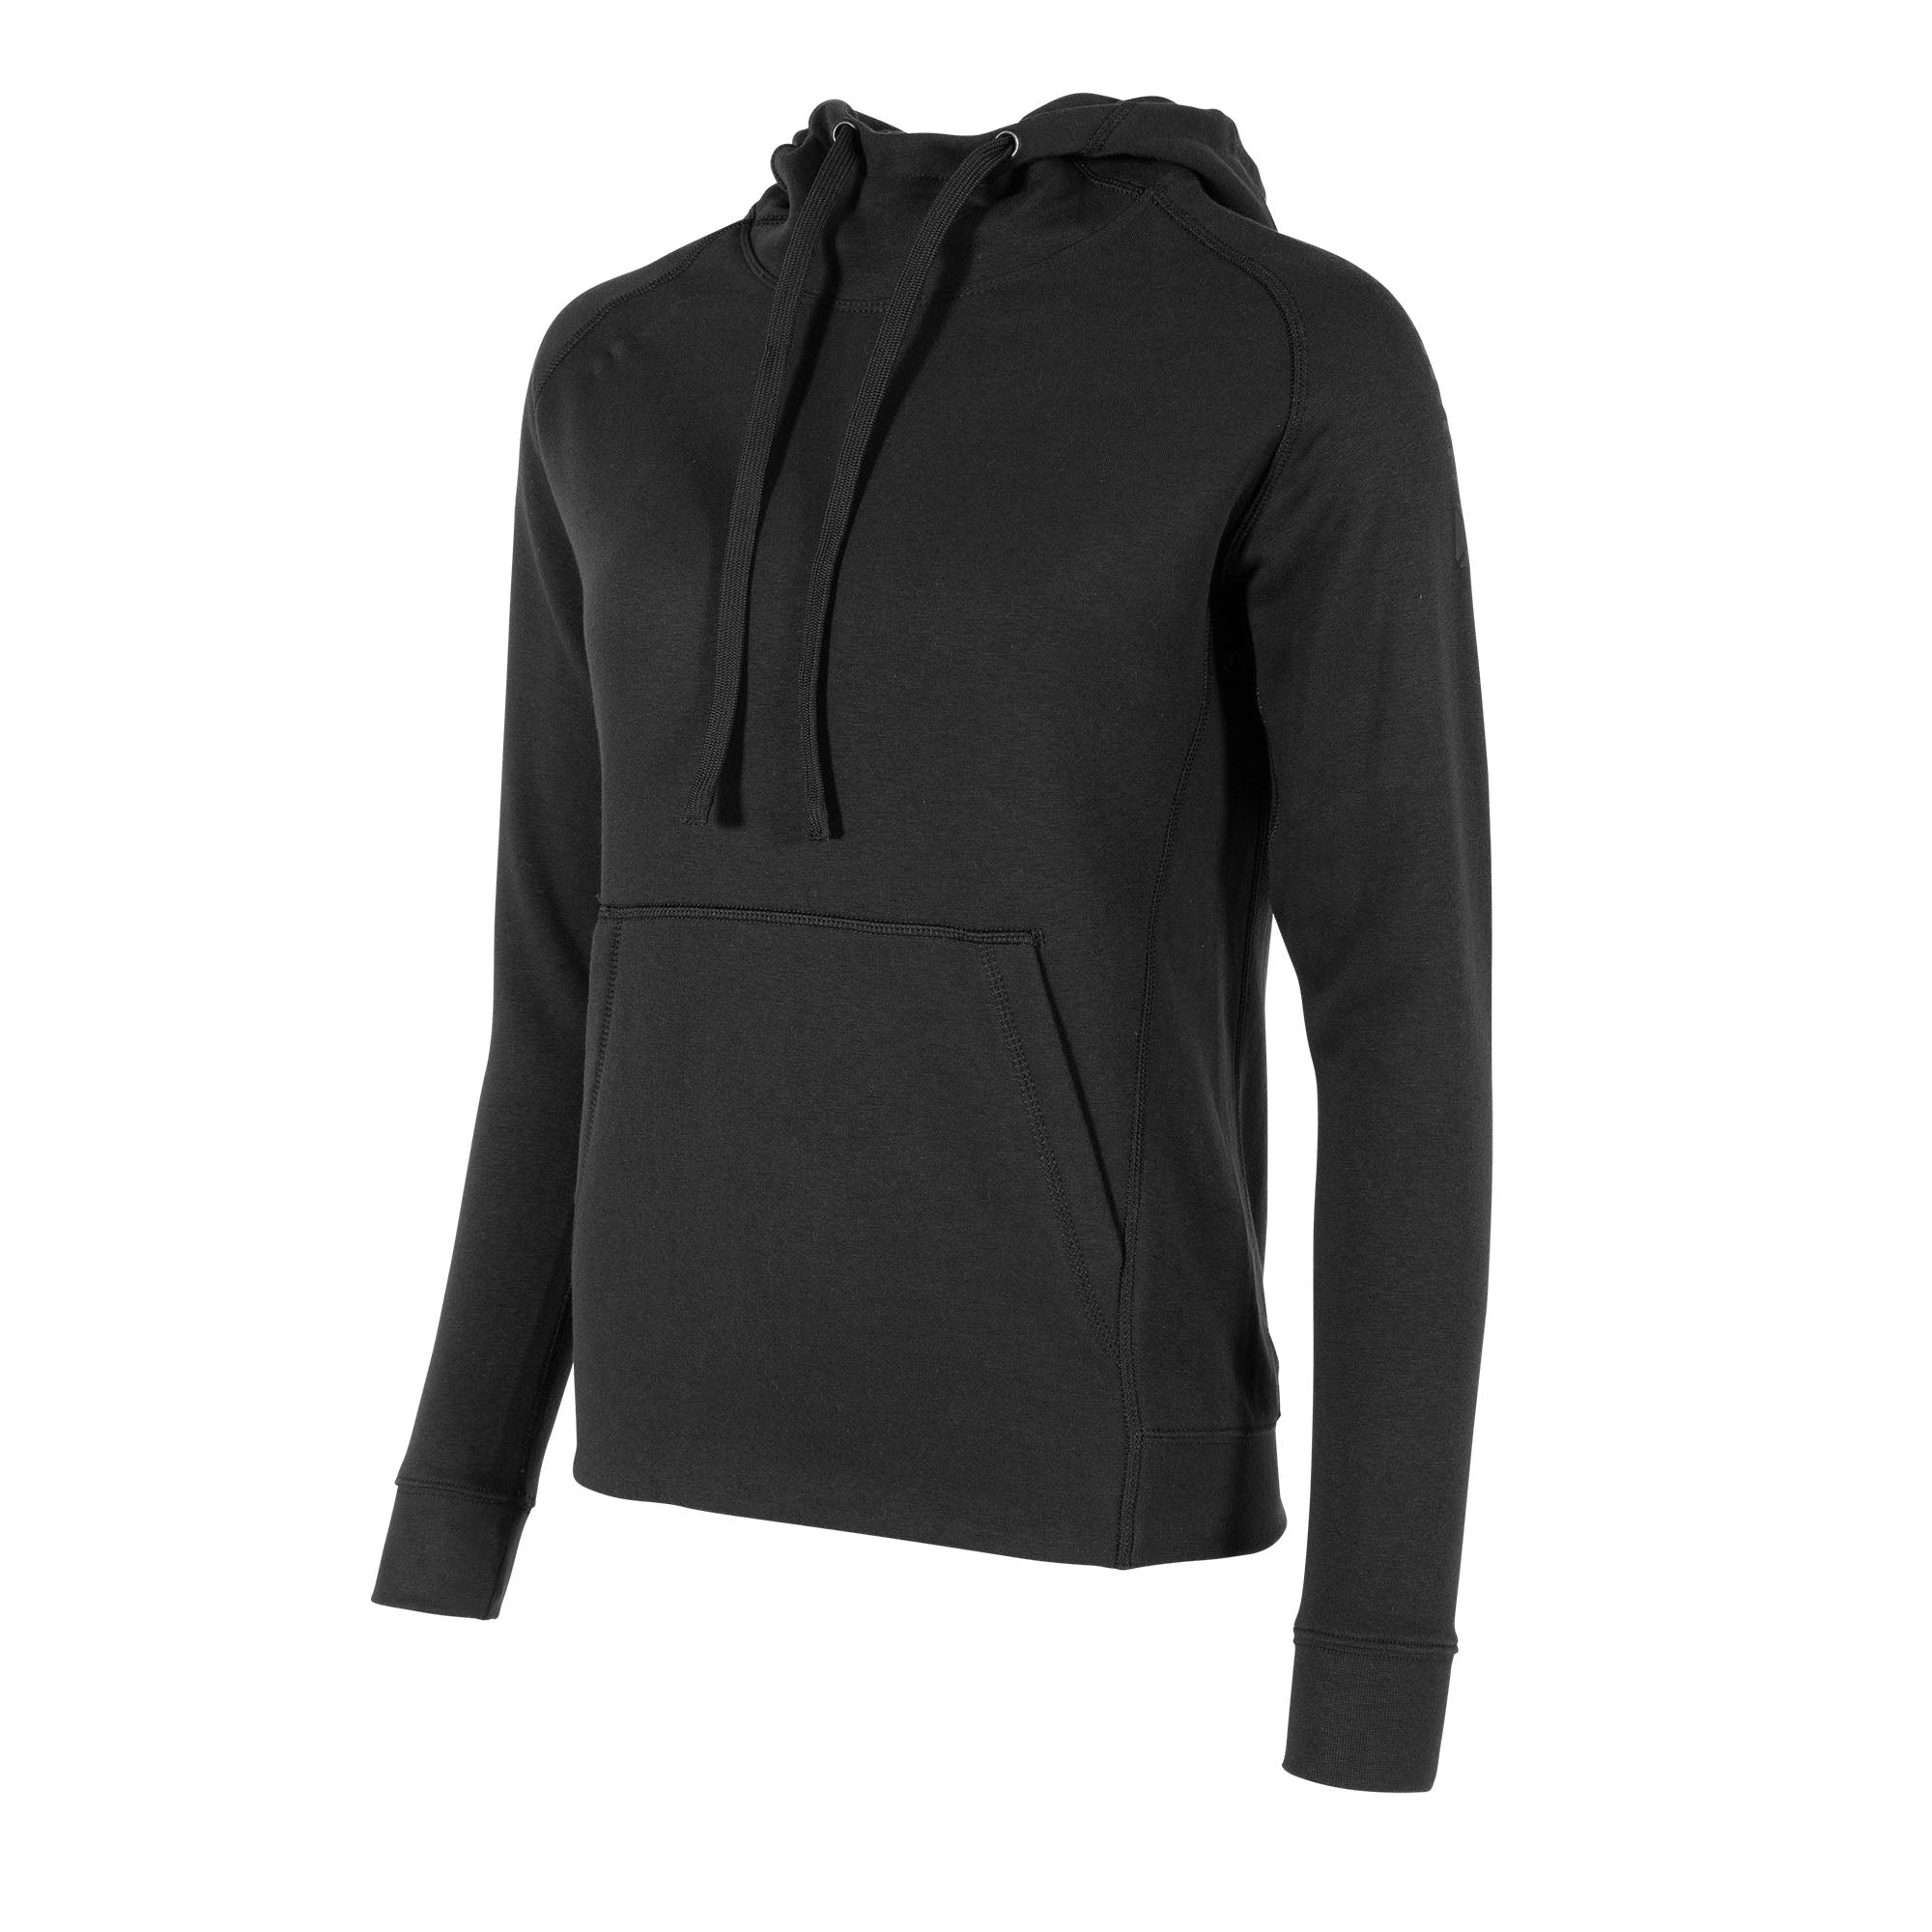 front view of a Stanno Ease Hoodie Ladies in black, with kangaroo pouch to the front. Drawstring hood.